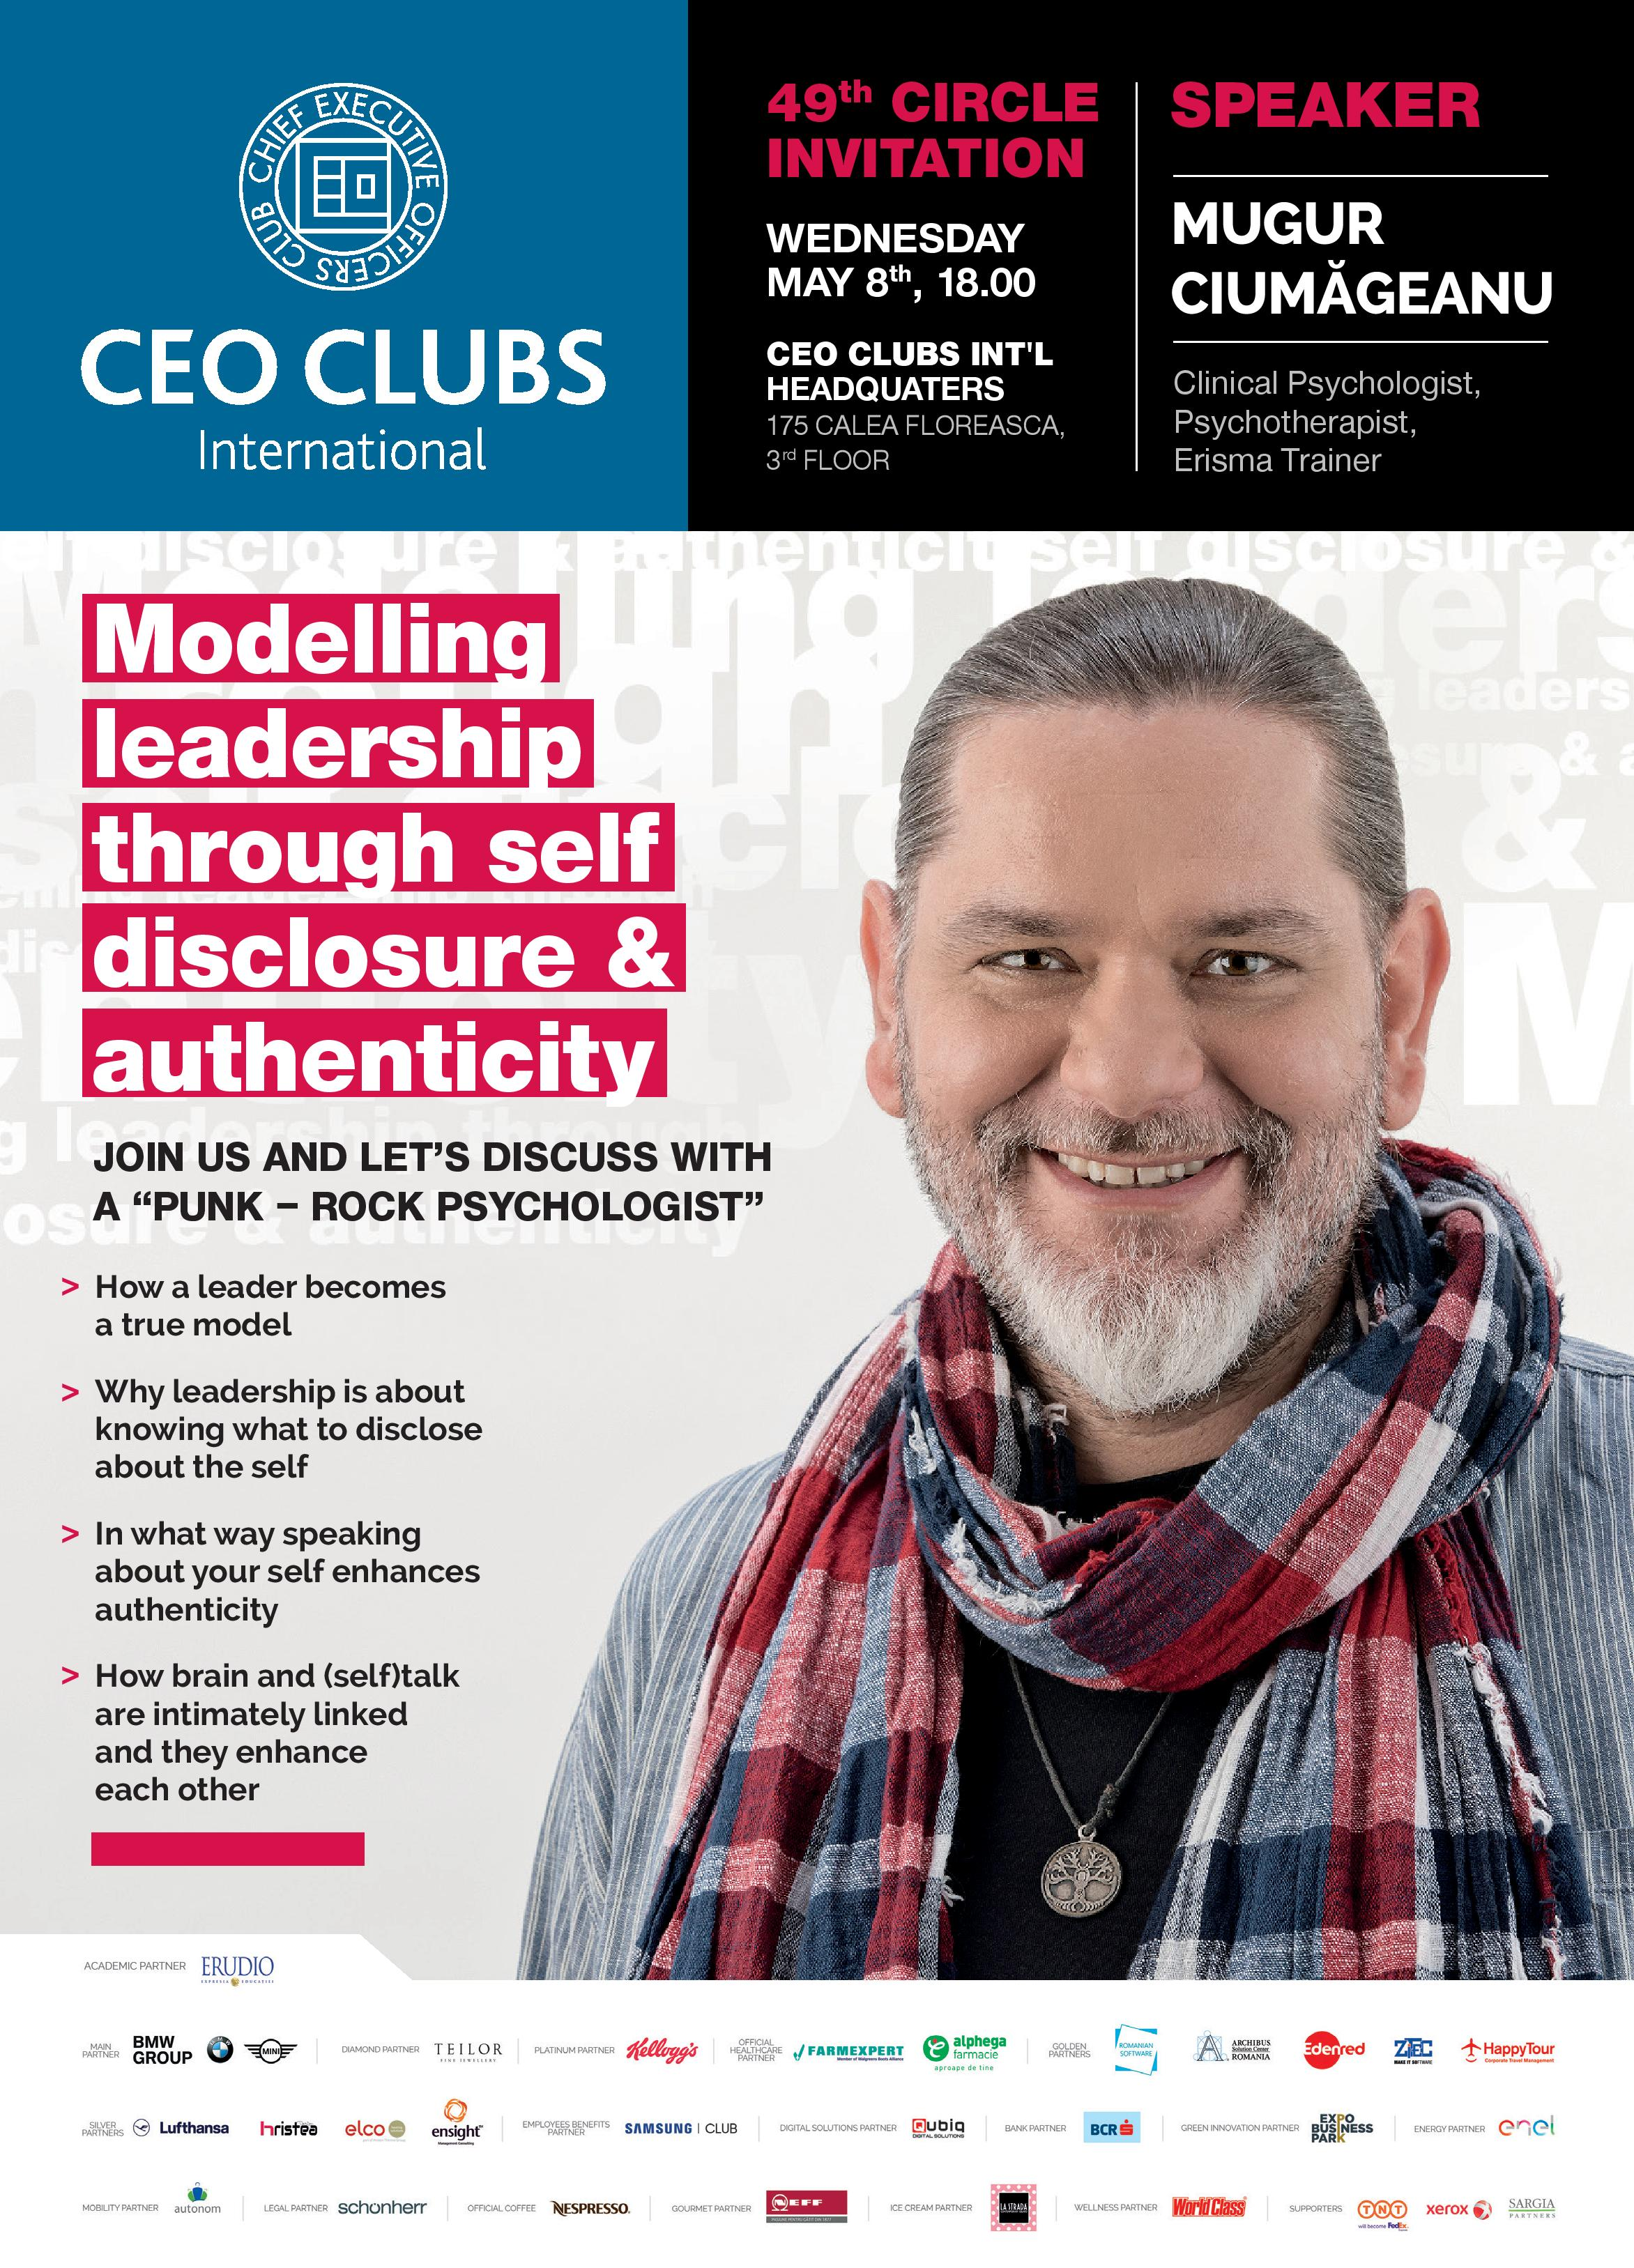 FULLY BOOKED! 49th Circle: Modelling leadership through self disclosure & authenticity